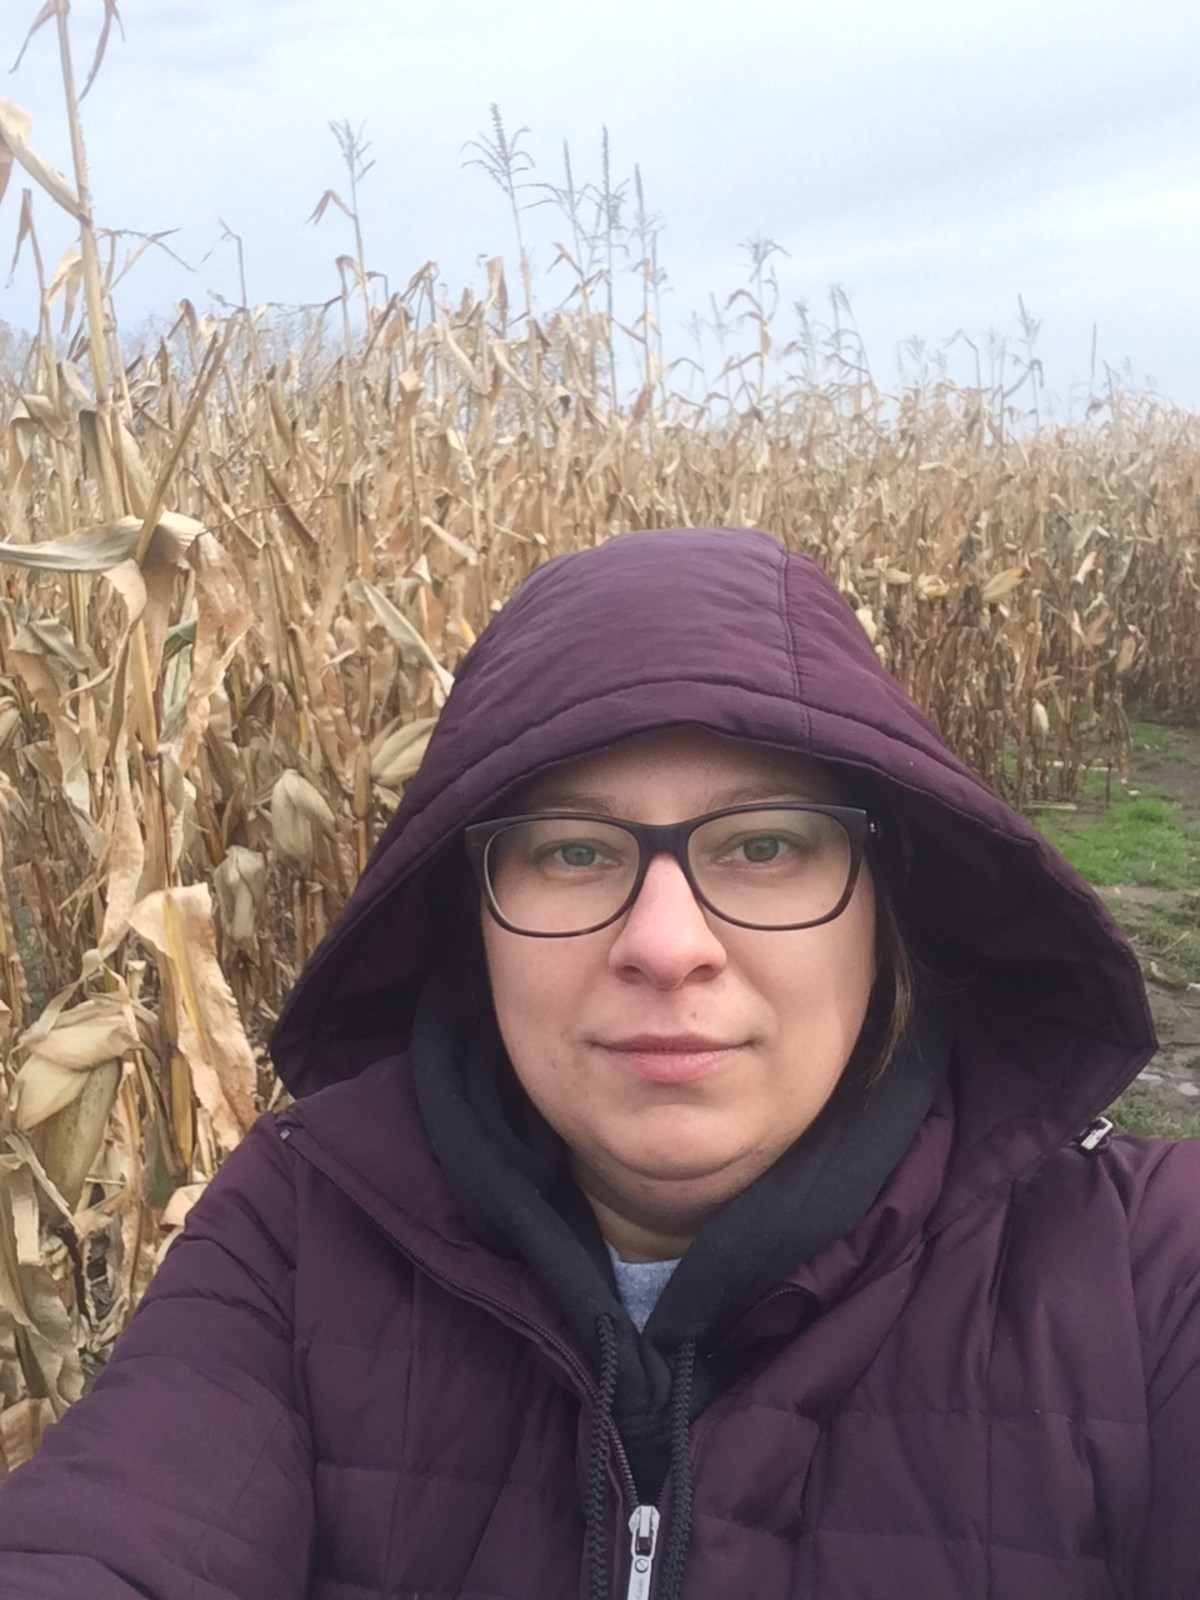 Lost in the Corn Maze...help!